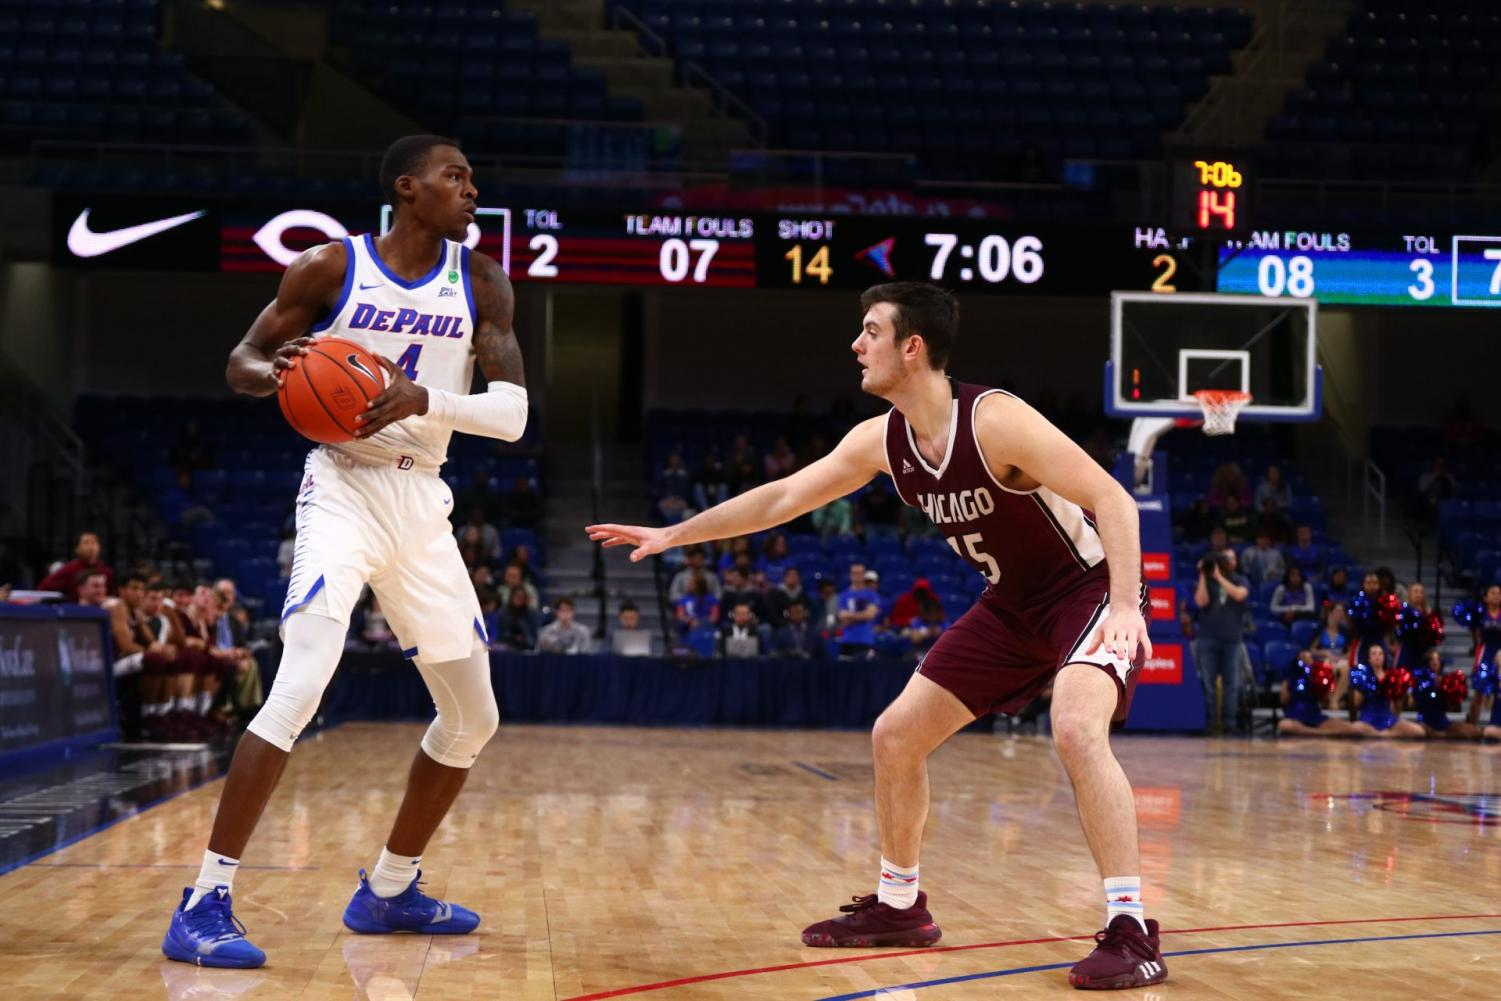 Paul Reed lines up against a U Chicago defender on Wednesday night at Wintrust Arena, the Blue Demons won 84-55.